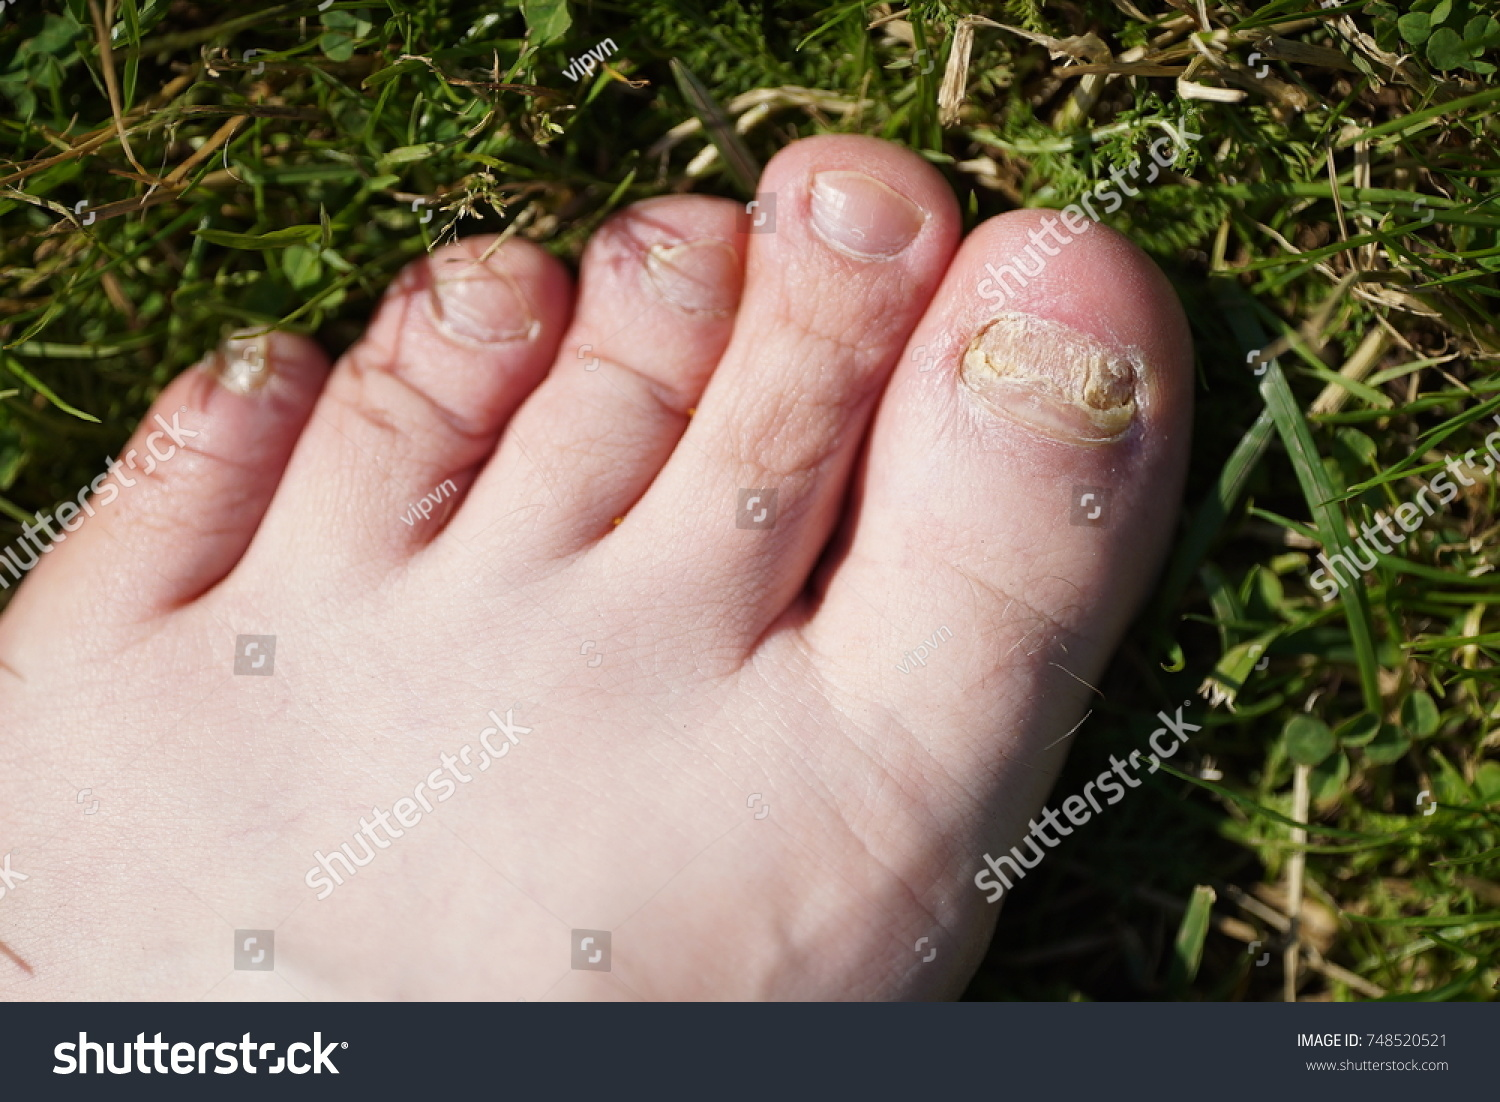 Onychomycosis Fungal Infection Nails Young Mans Stock Photo (Royalty ...